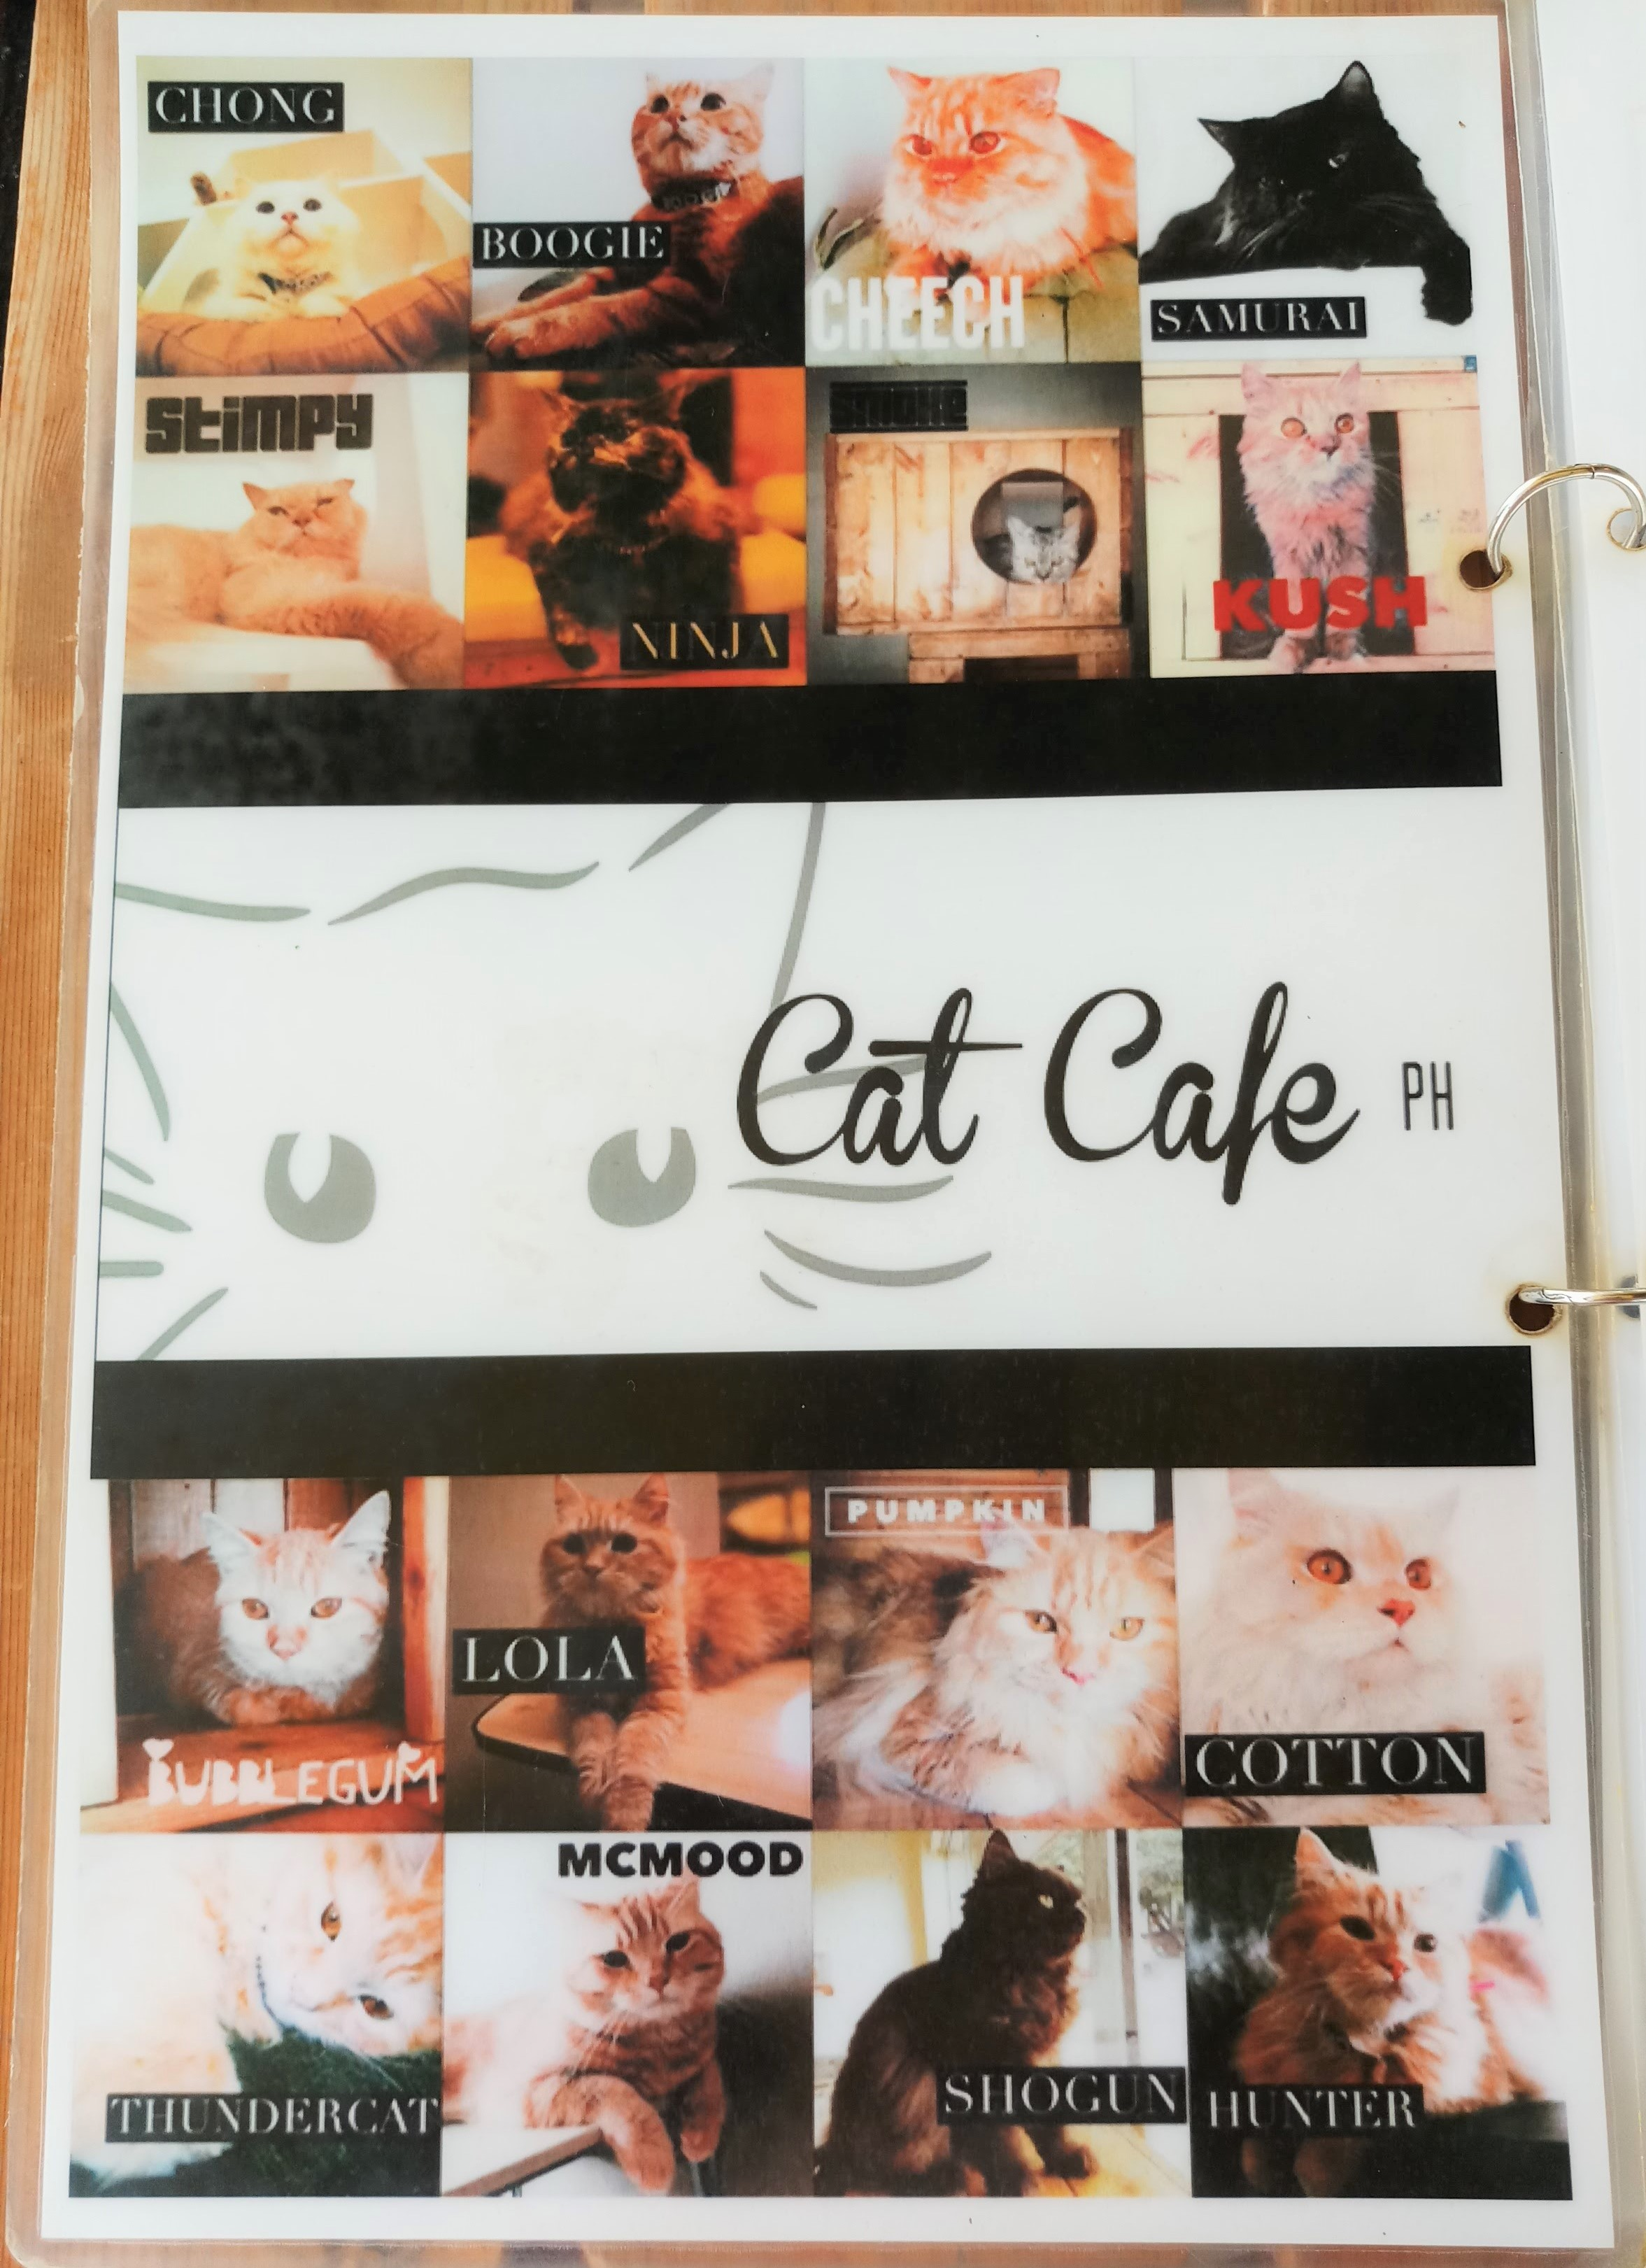 Cat Cafe Cebu - Cat names